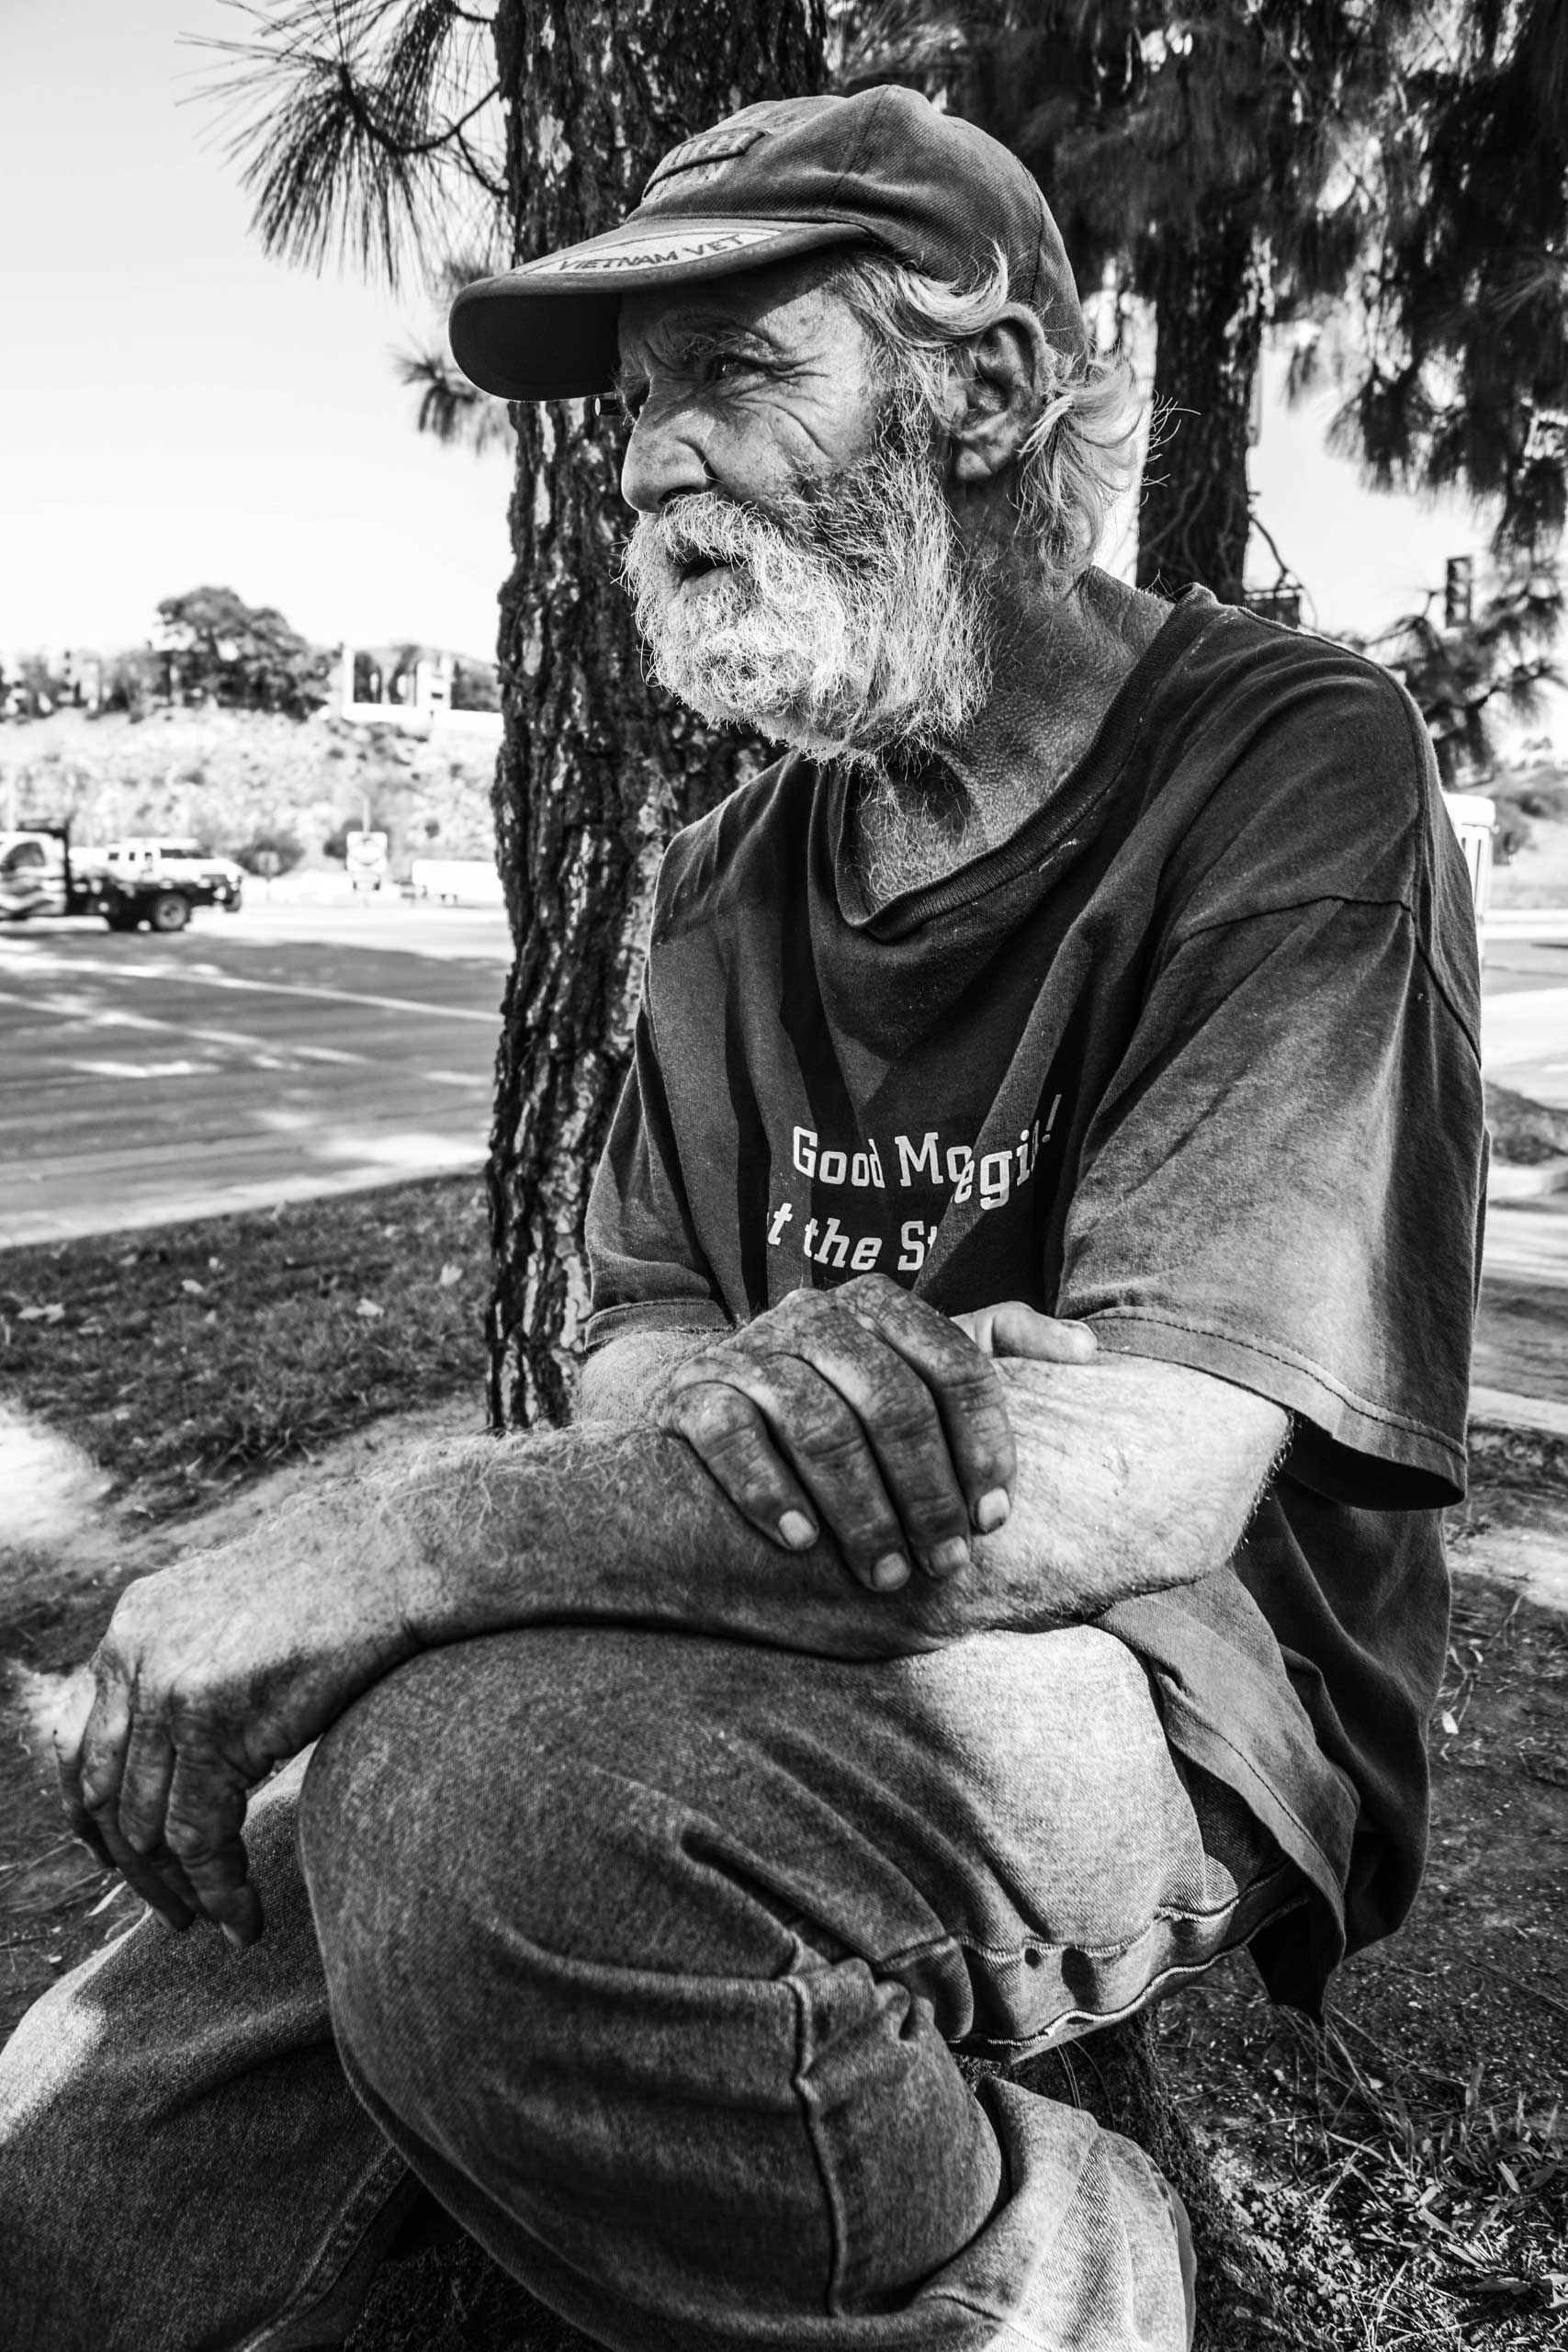 Sept. 24, 2014. Temple Street, Pomona, Calif.                                                               Rodney Farmer served nine years in the infantry as an airborne fighter. He has been sleeping in the streets for 14 months. He receives SSI (Supplemental Security Income) and gets my medical assistance from the Department of Veterans Affairs (VA).